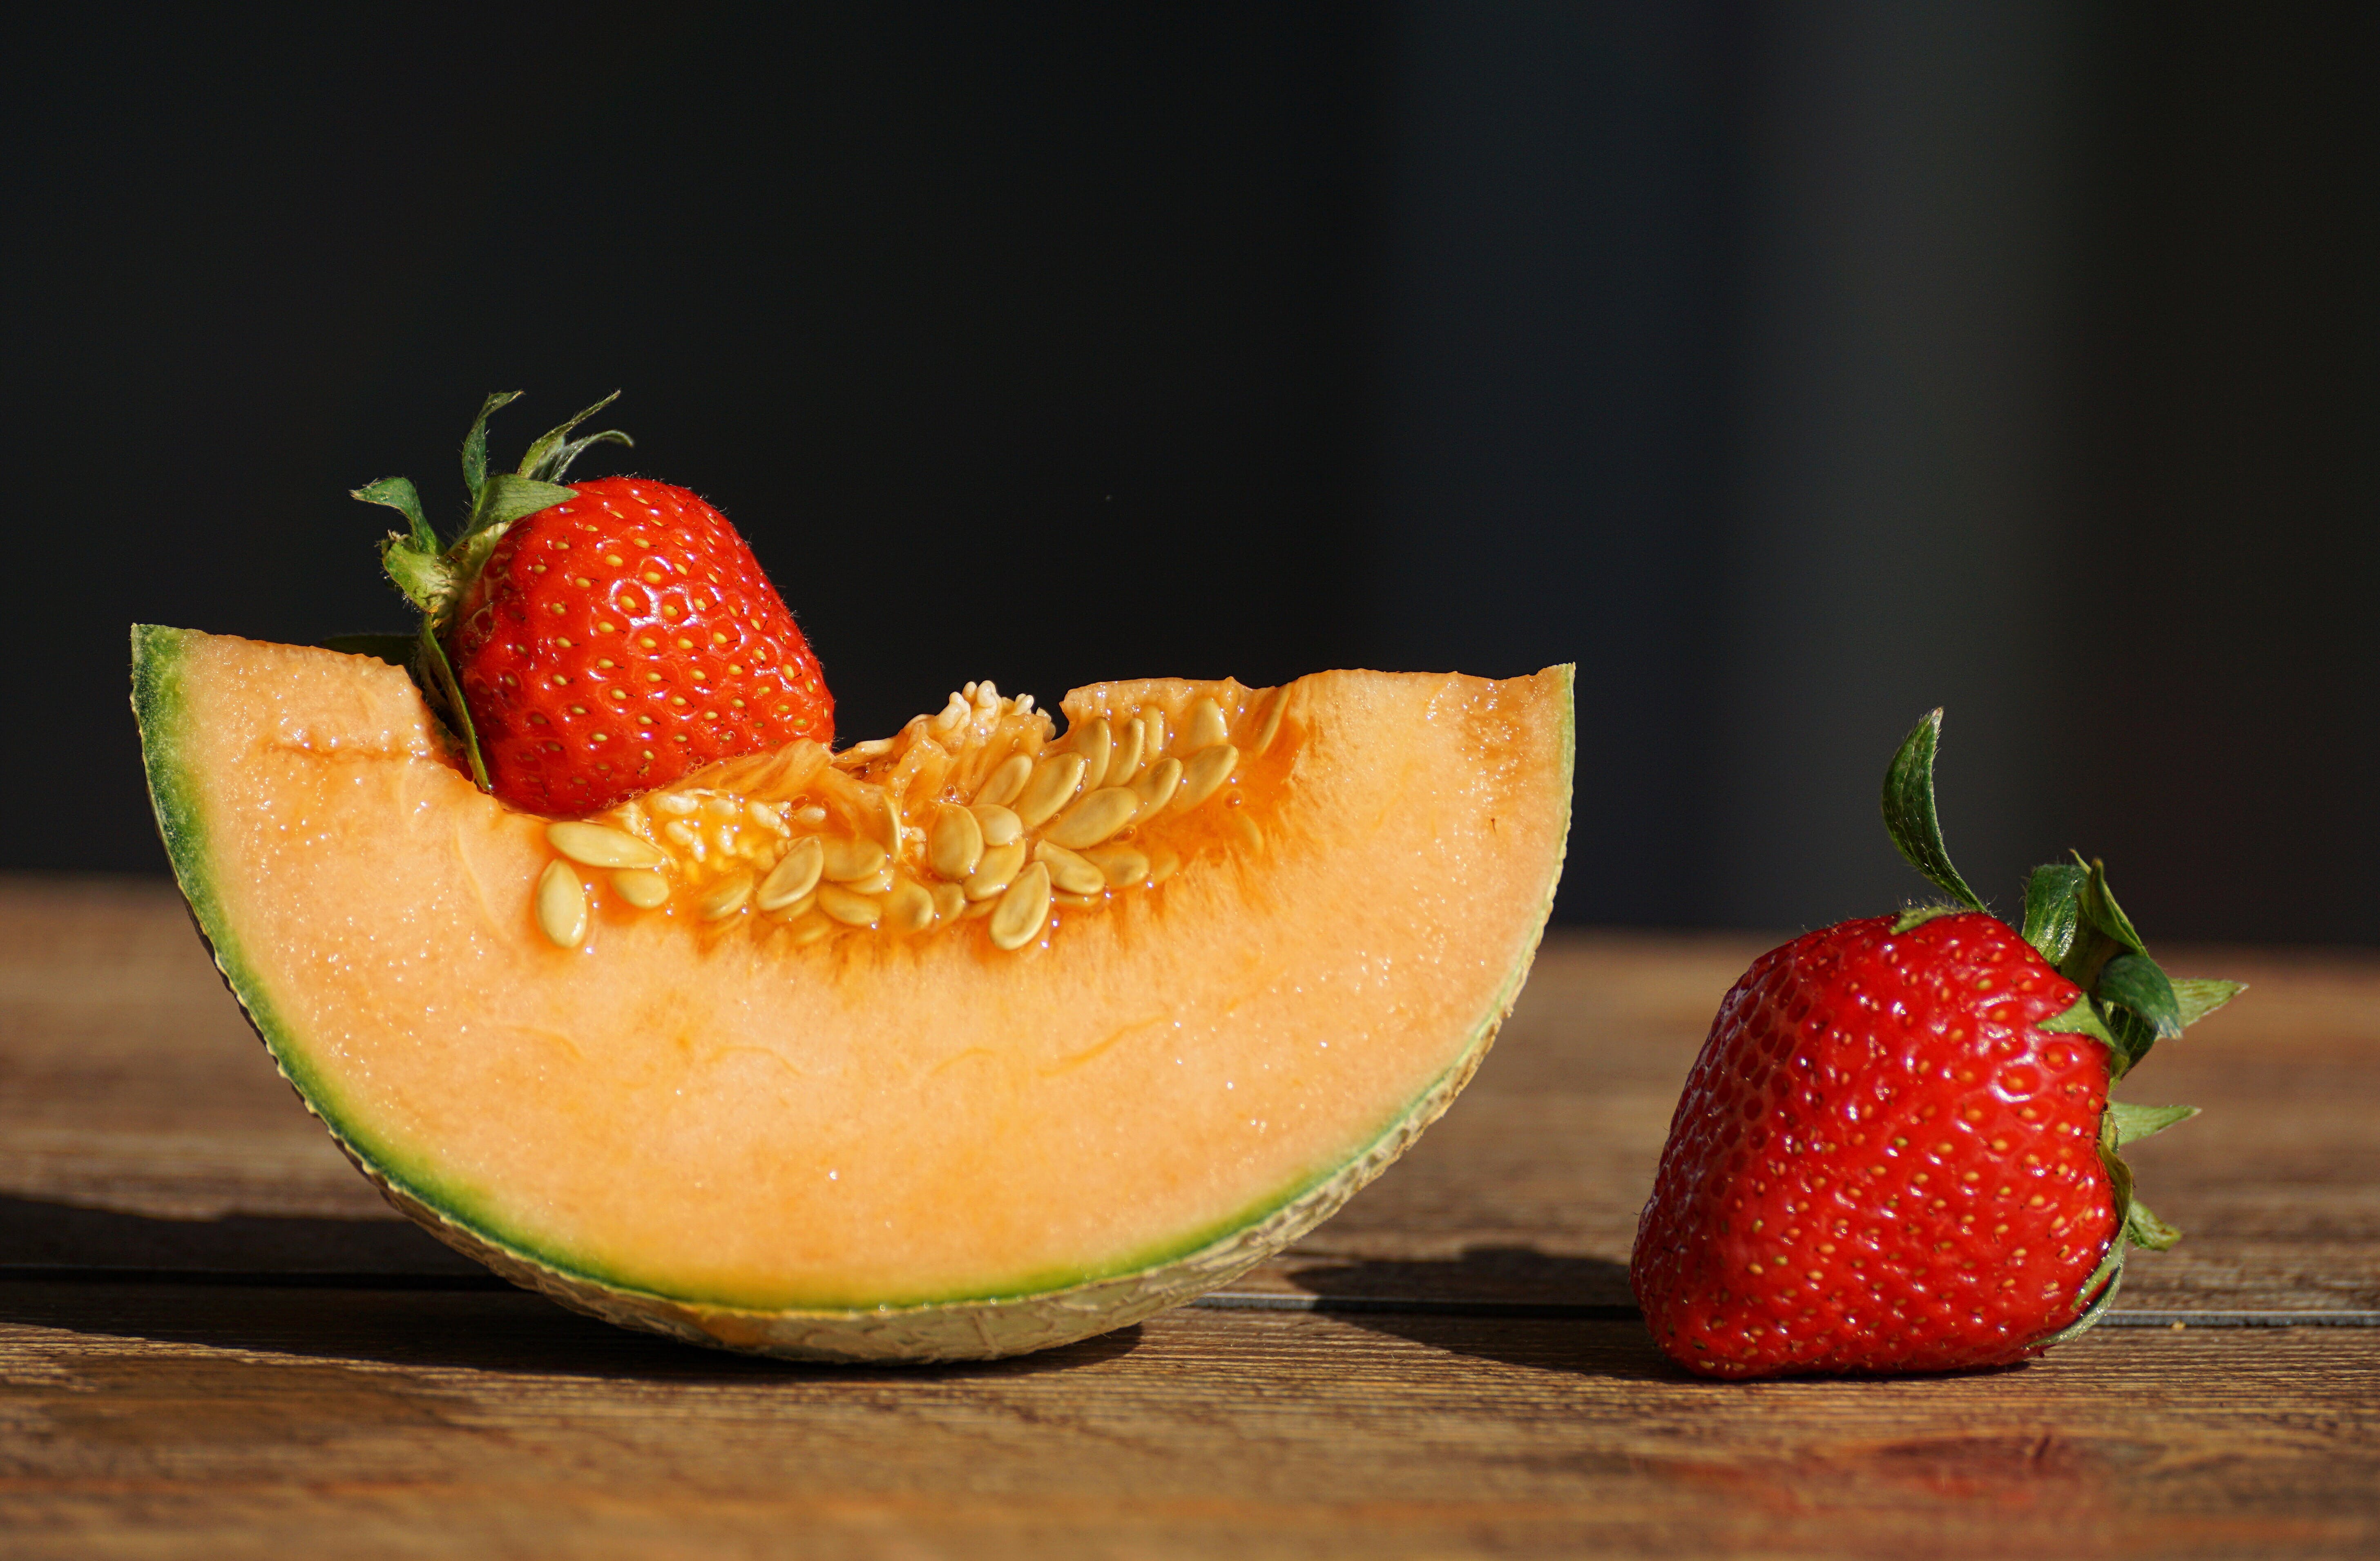 Red Strawberries and Cantaloupe